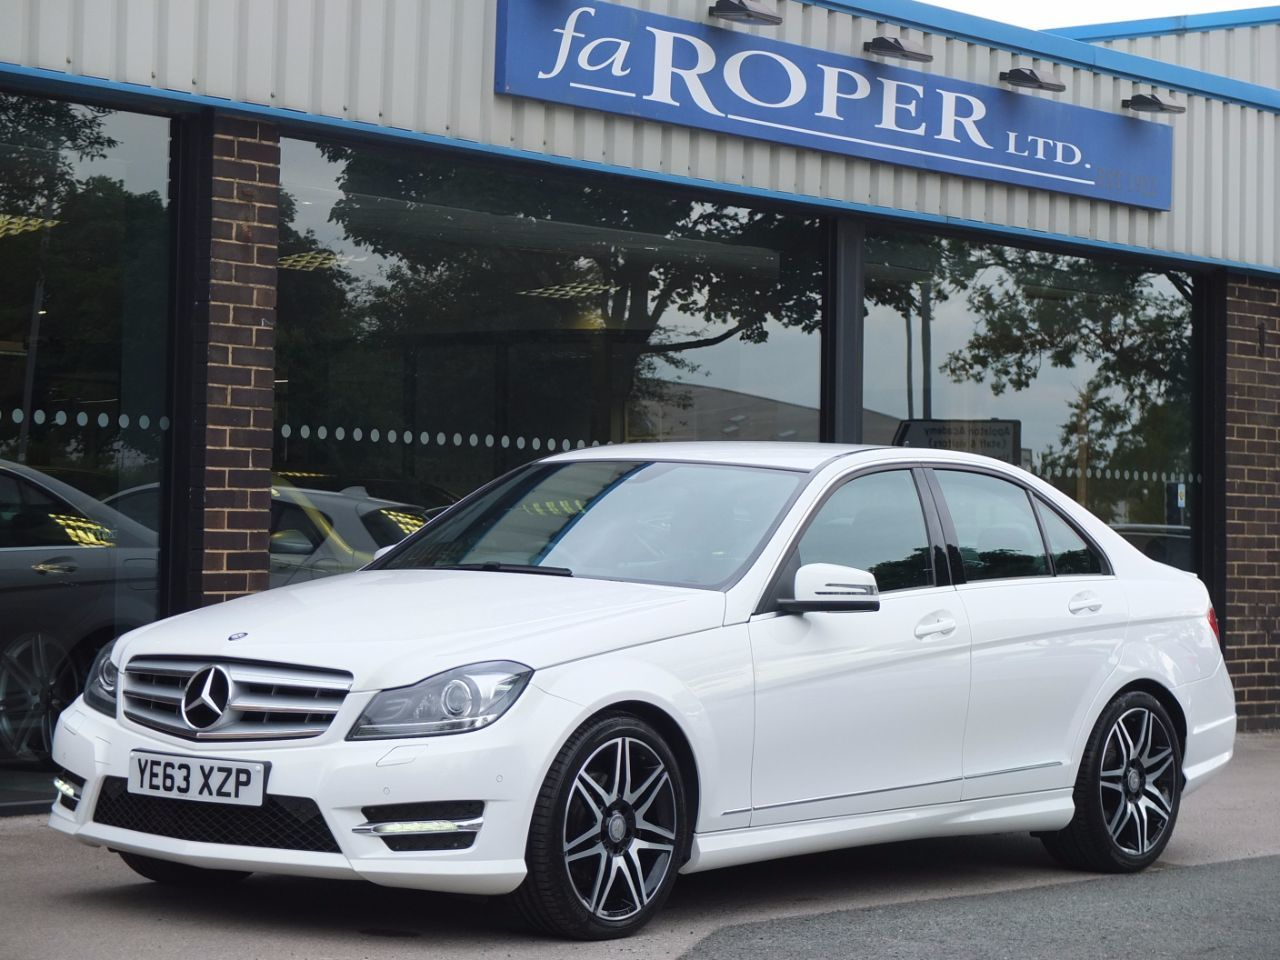 Mercedes-Benz C Class 2.1 C220 CDI BlueEFFICIENCY AMG Sport Plus 4dr Auto Saloon Diesel Polar WhiteMercedes-Benz C Class 2.1 C220 CDI BlueEFFICIENCY AMG Sport Plus 4dr Auto Saloon Diesel Polar White at fa Roper Ltd Bradford